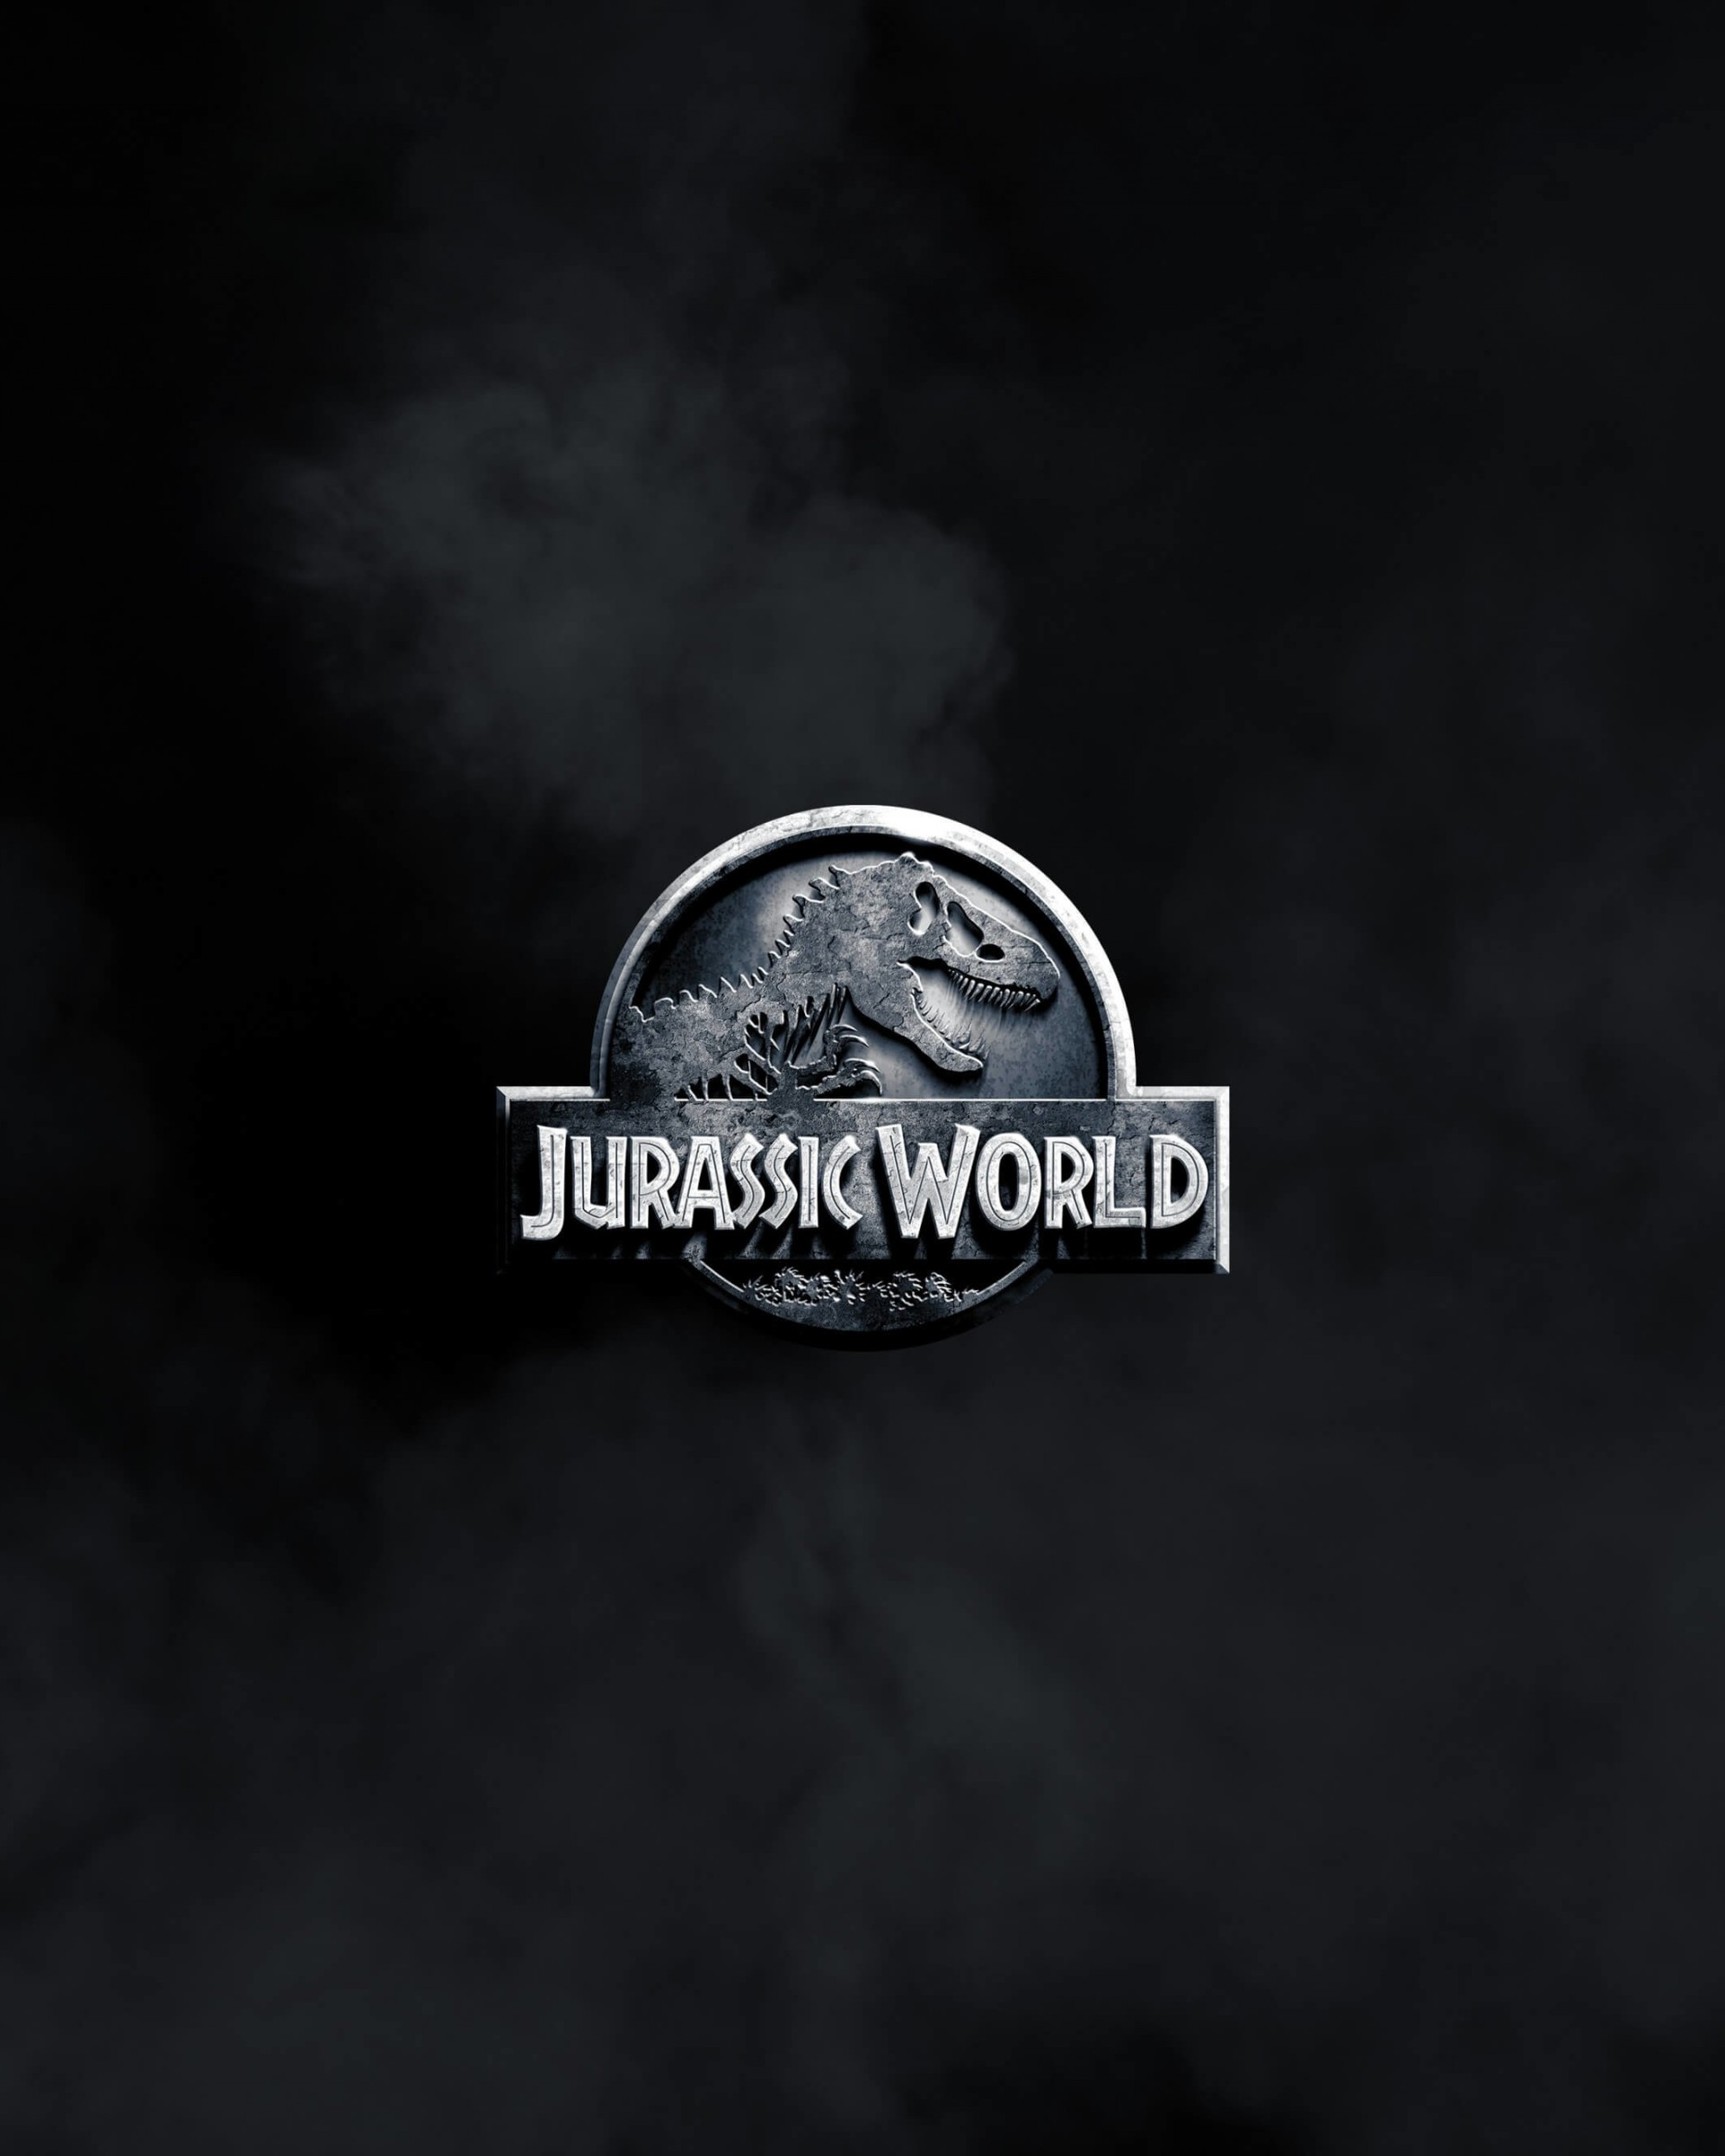 Jurassic World Wallpaper for Google Nexus 7